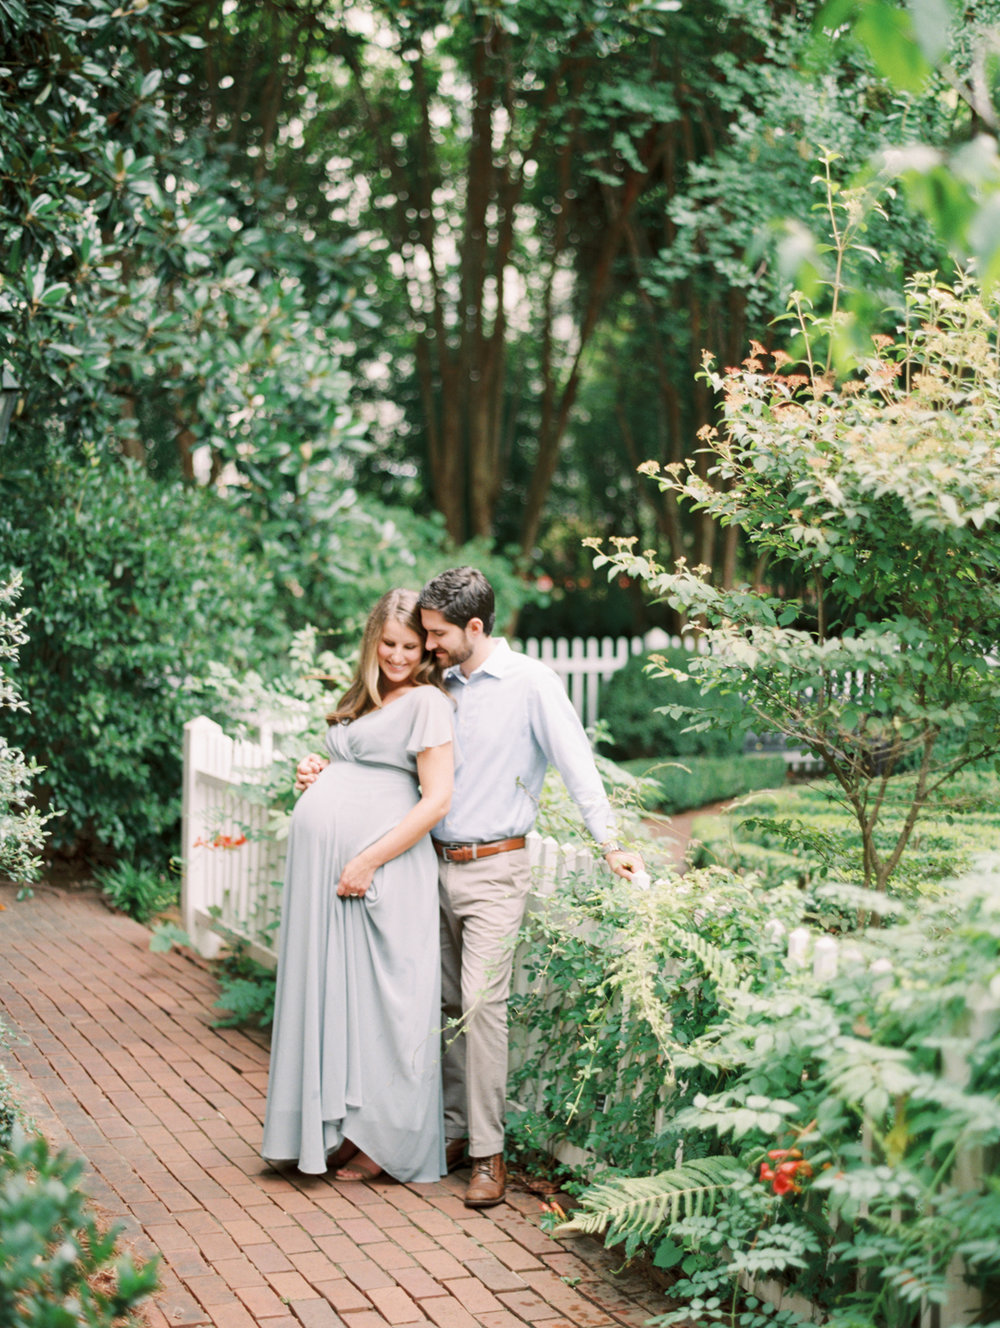 shackleford maternity four corners photography athens maternity photographer anna shackleford photography atlanta film photographer maternity photography-28.jpg